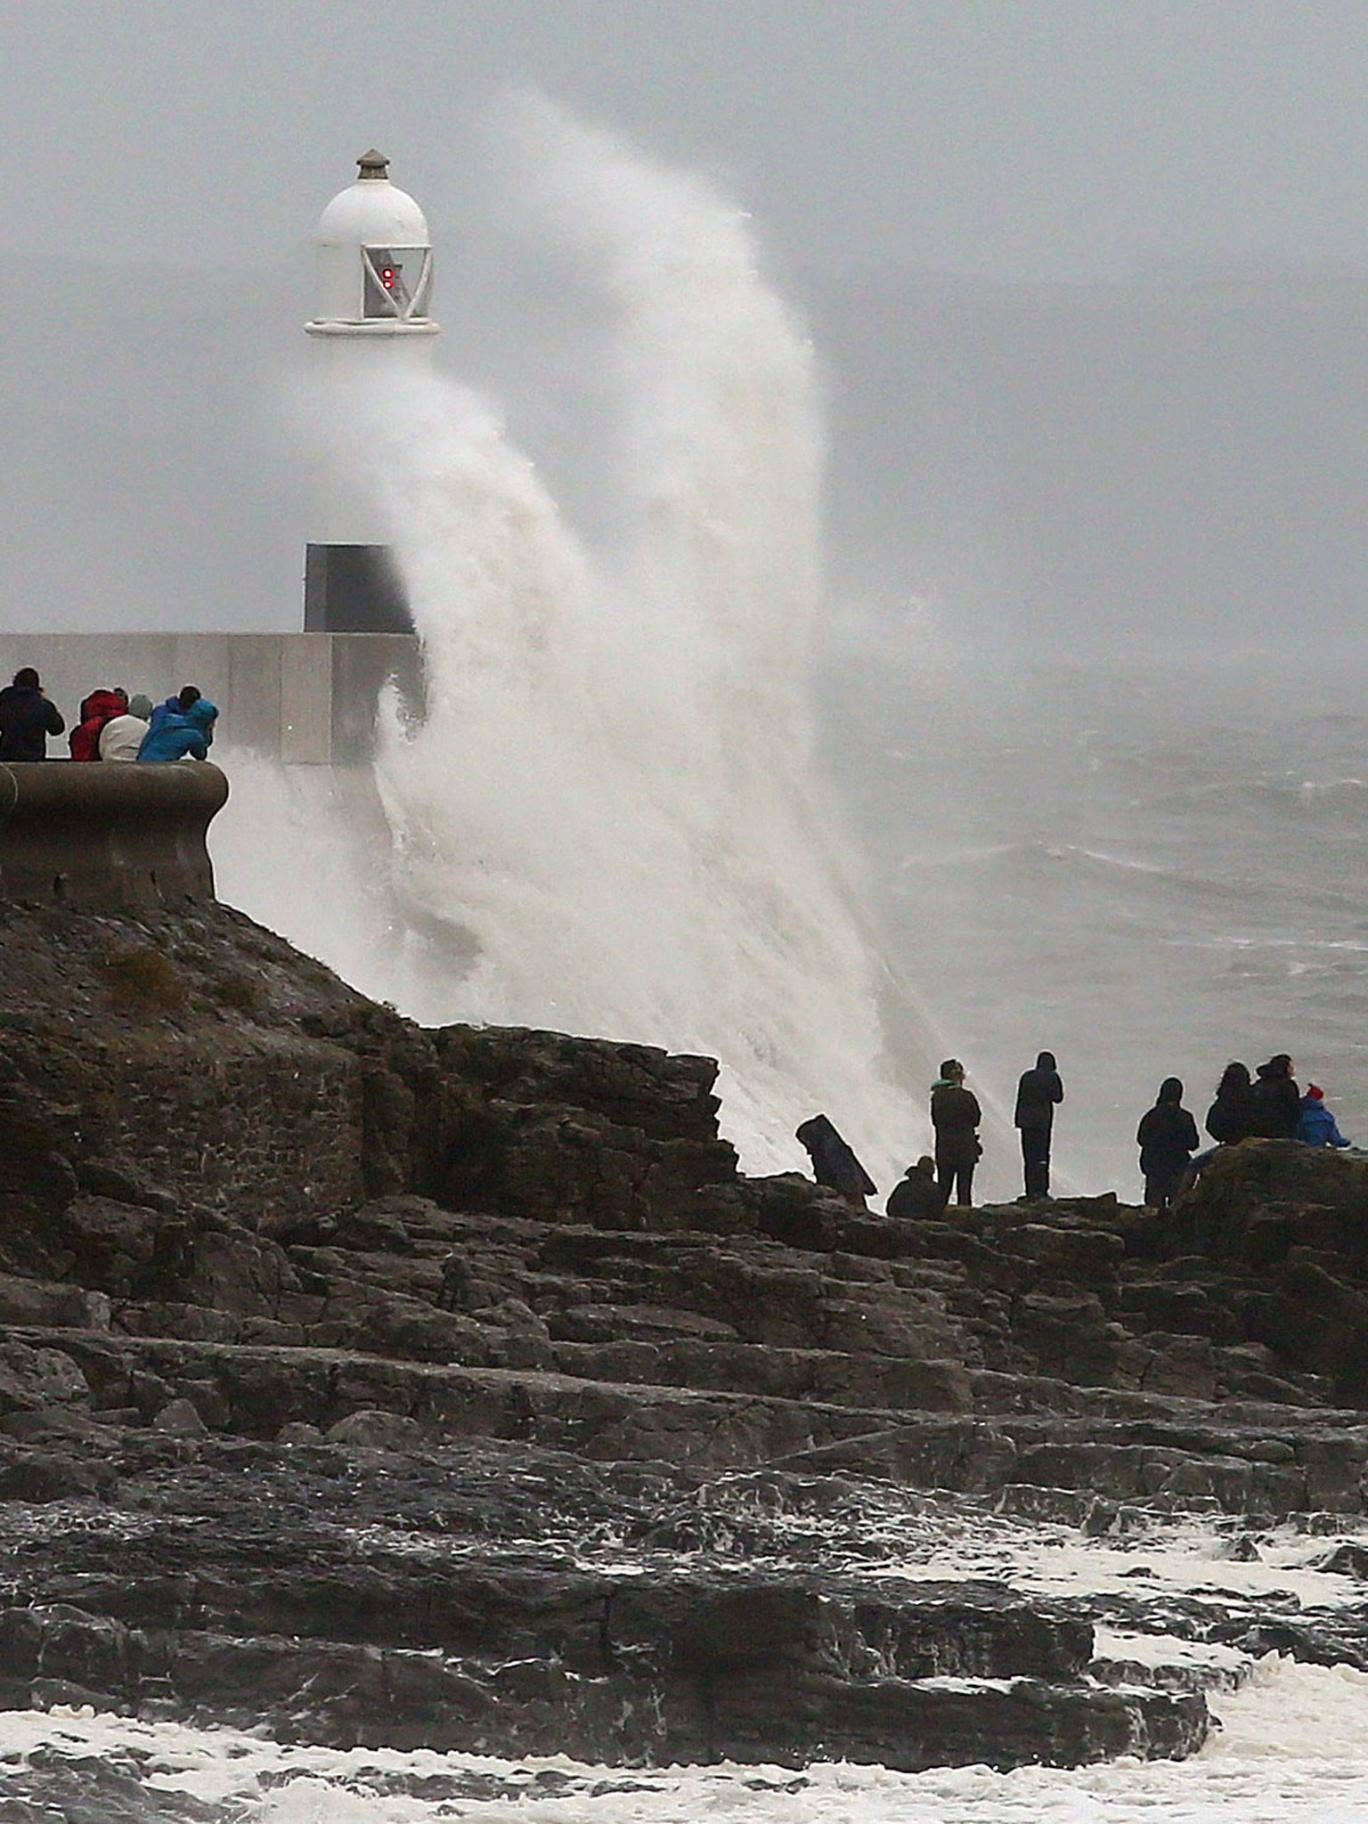 Waves crash against the sea barriers in Porthcawl, south Wales